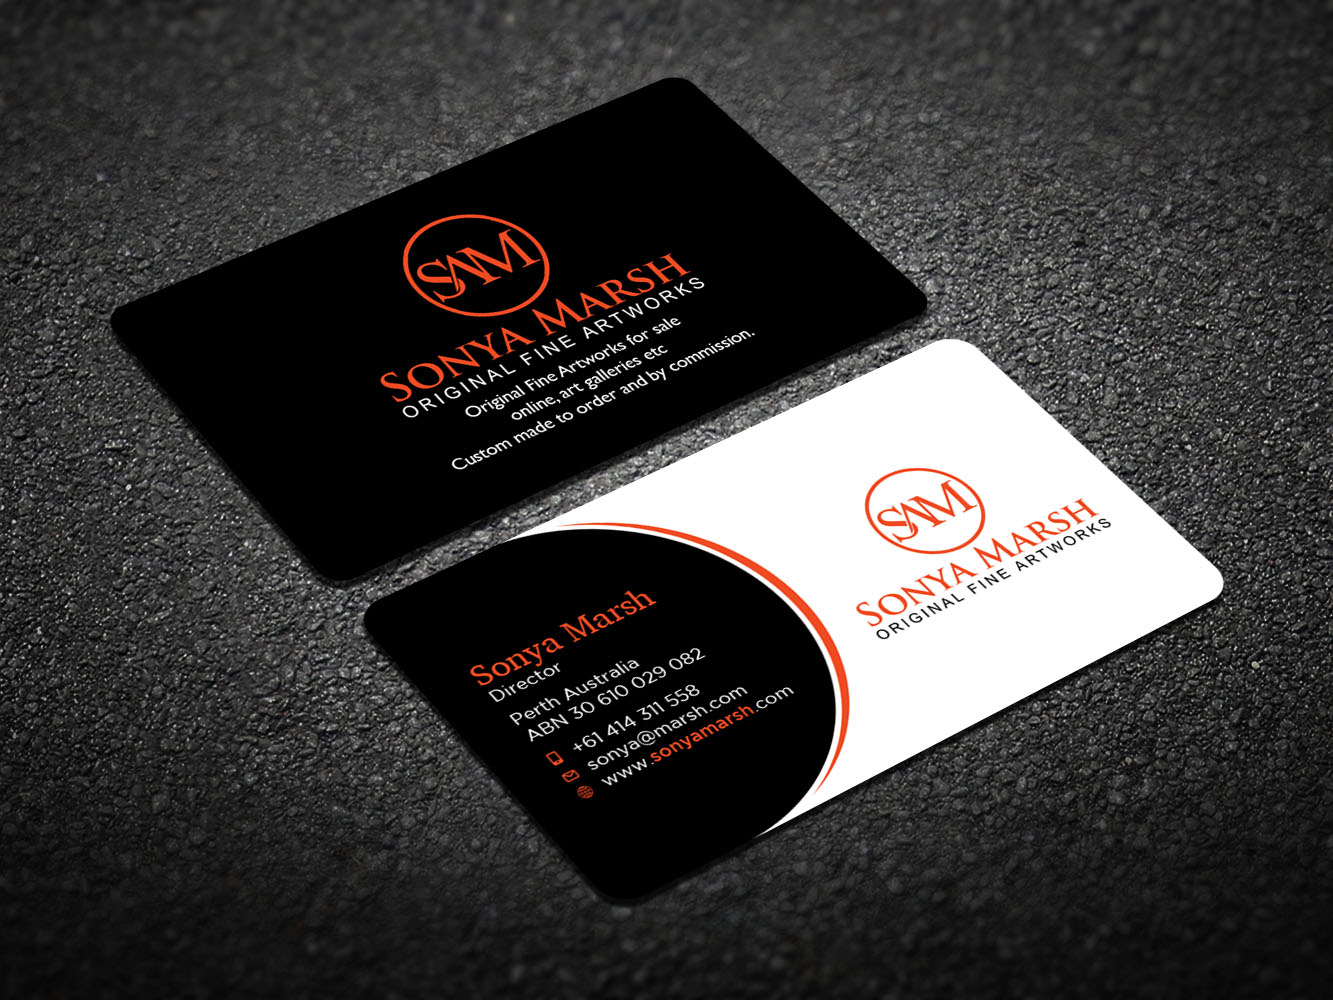 Business card design for sonya marsh by design xeneration design business card design by design xeneration for i need a business card for my original reheart Gallery